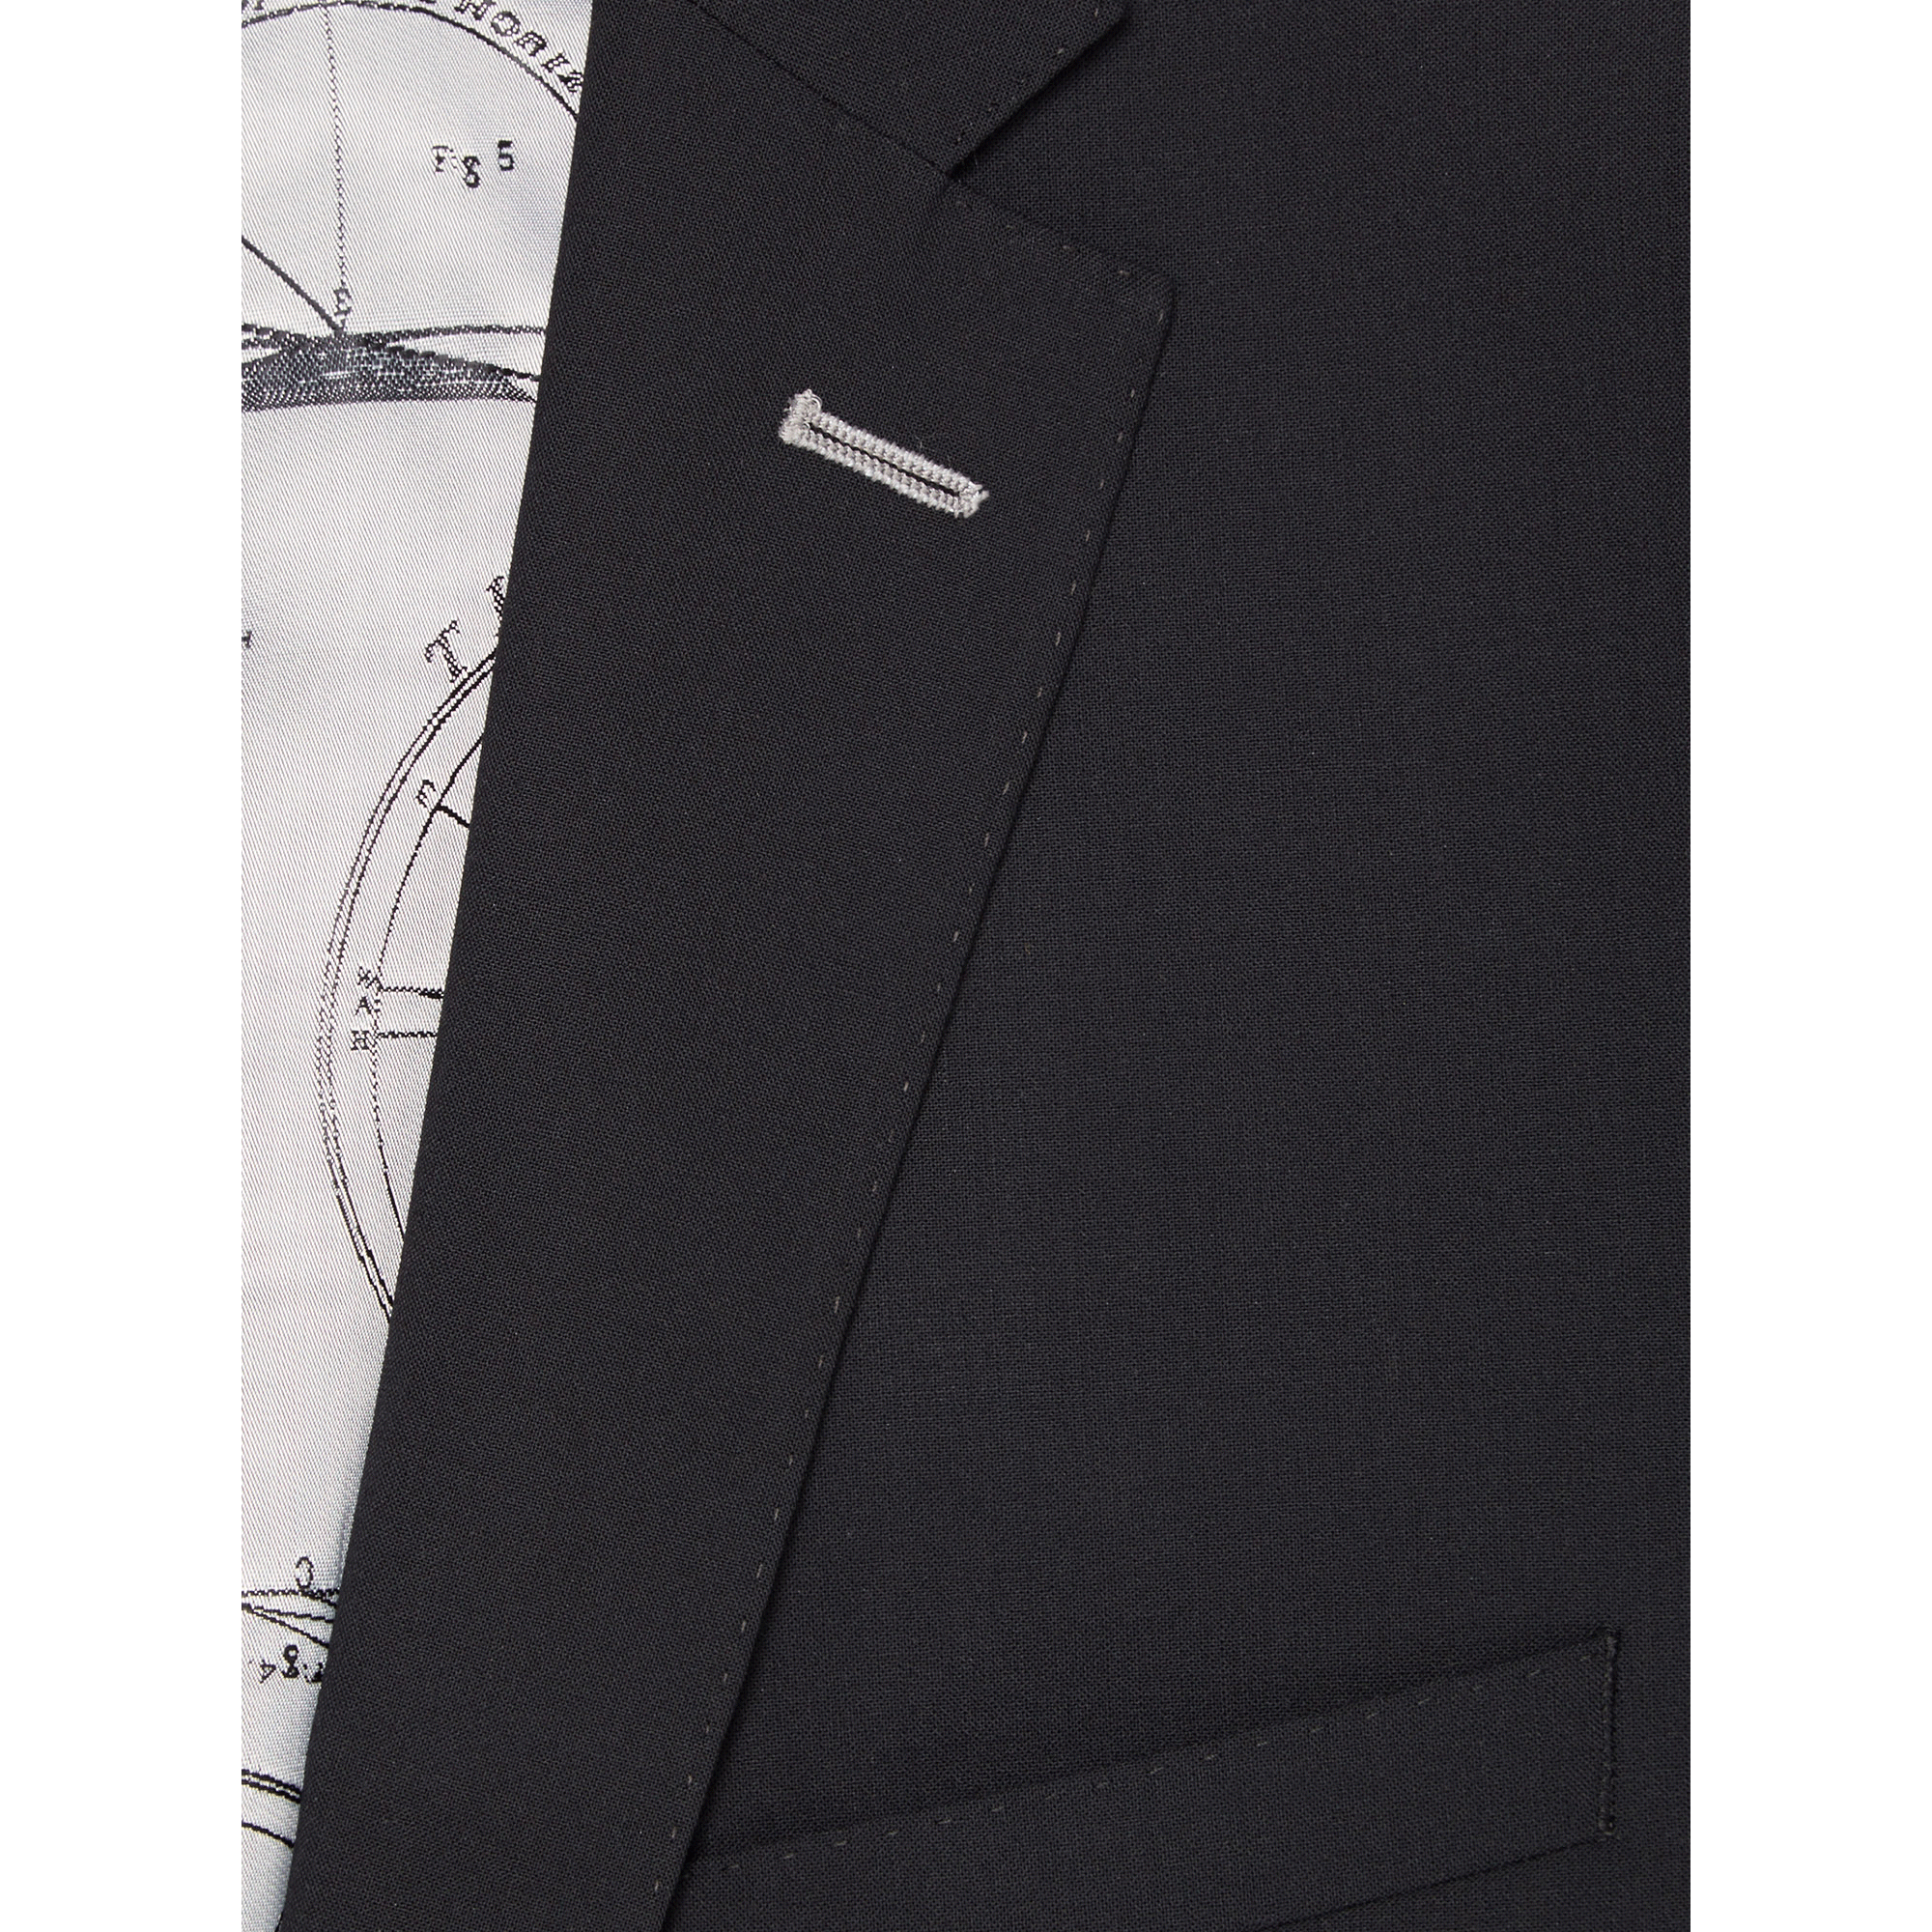 Remus Slim Fit Suit, Black - Leonard Silver